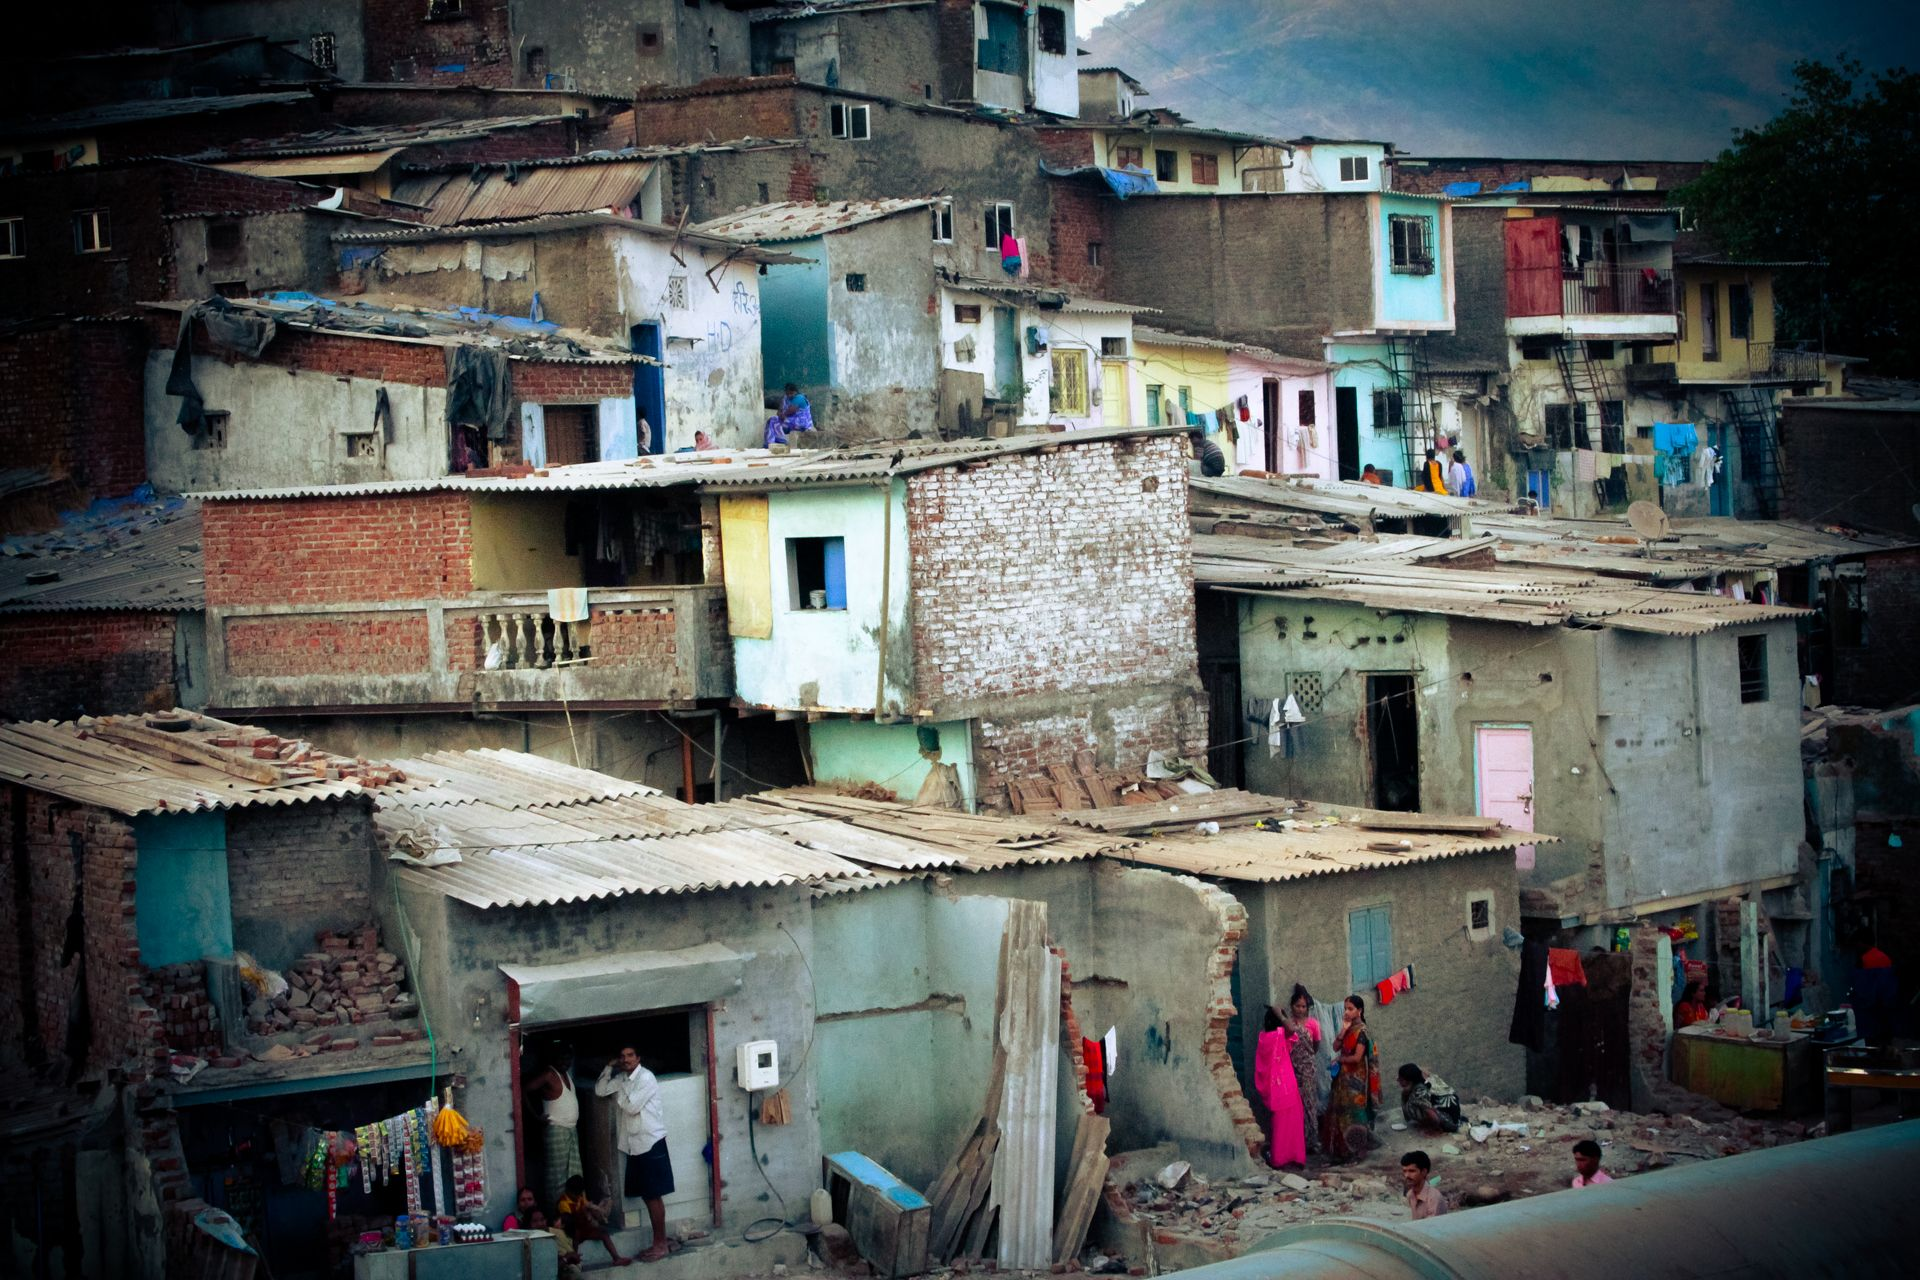 Slums in the South American andes